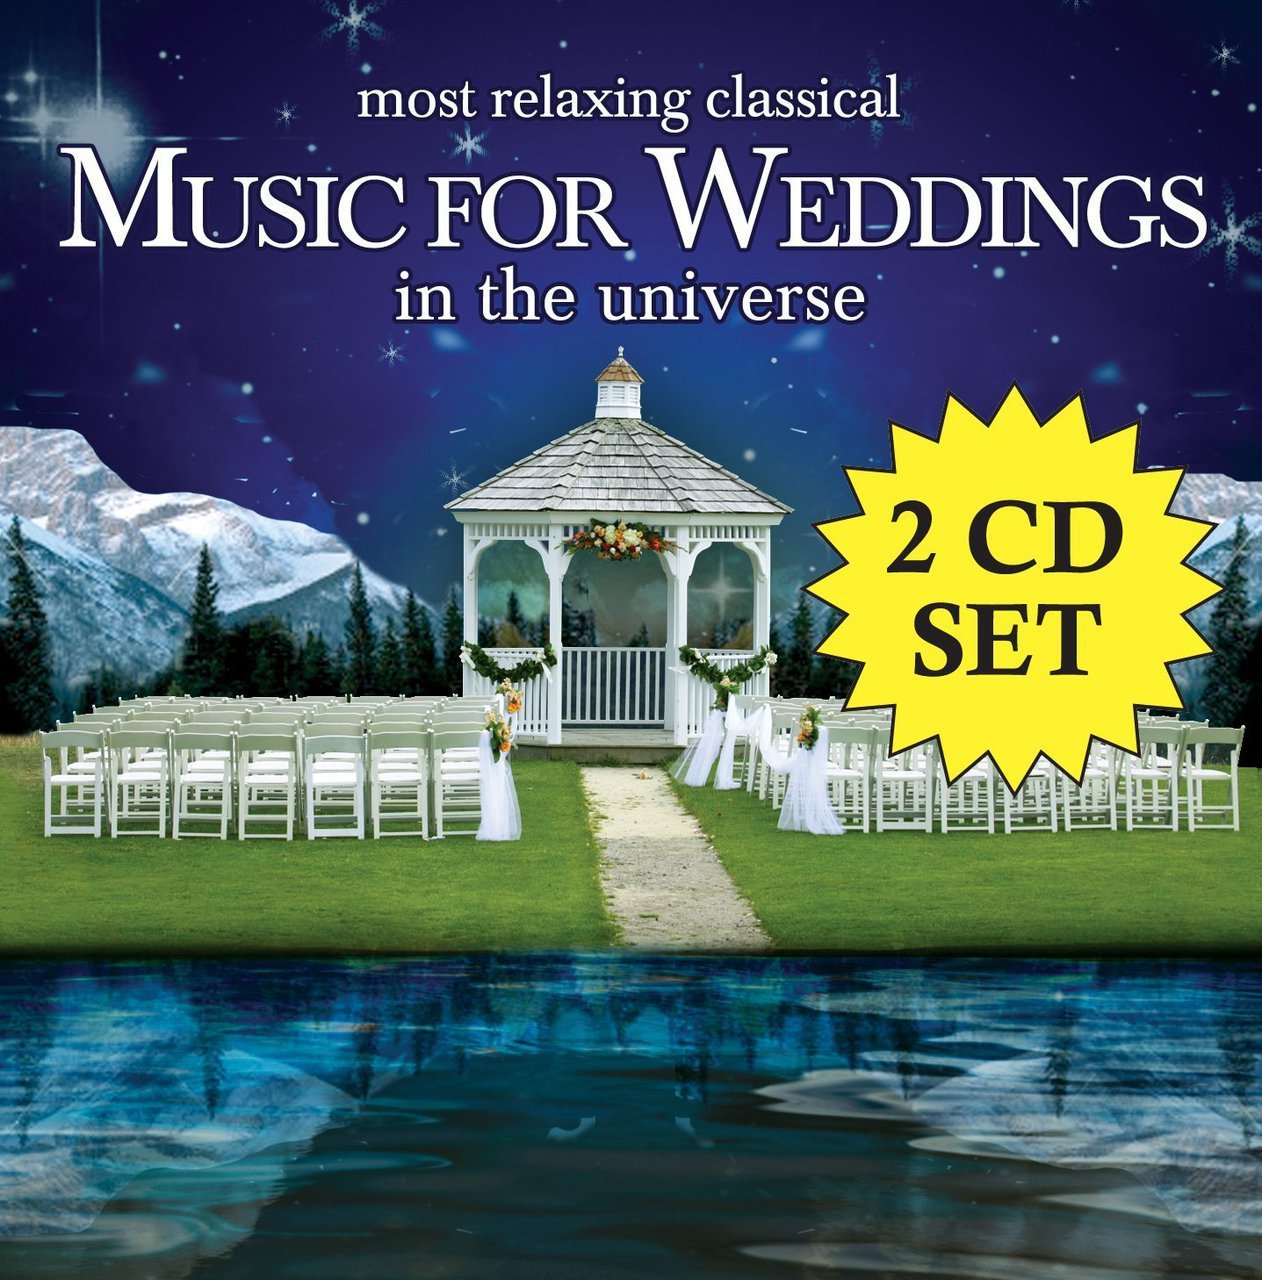 Most relaxing classical music for weddings in the universe by various